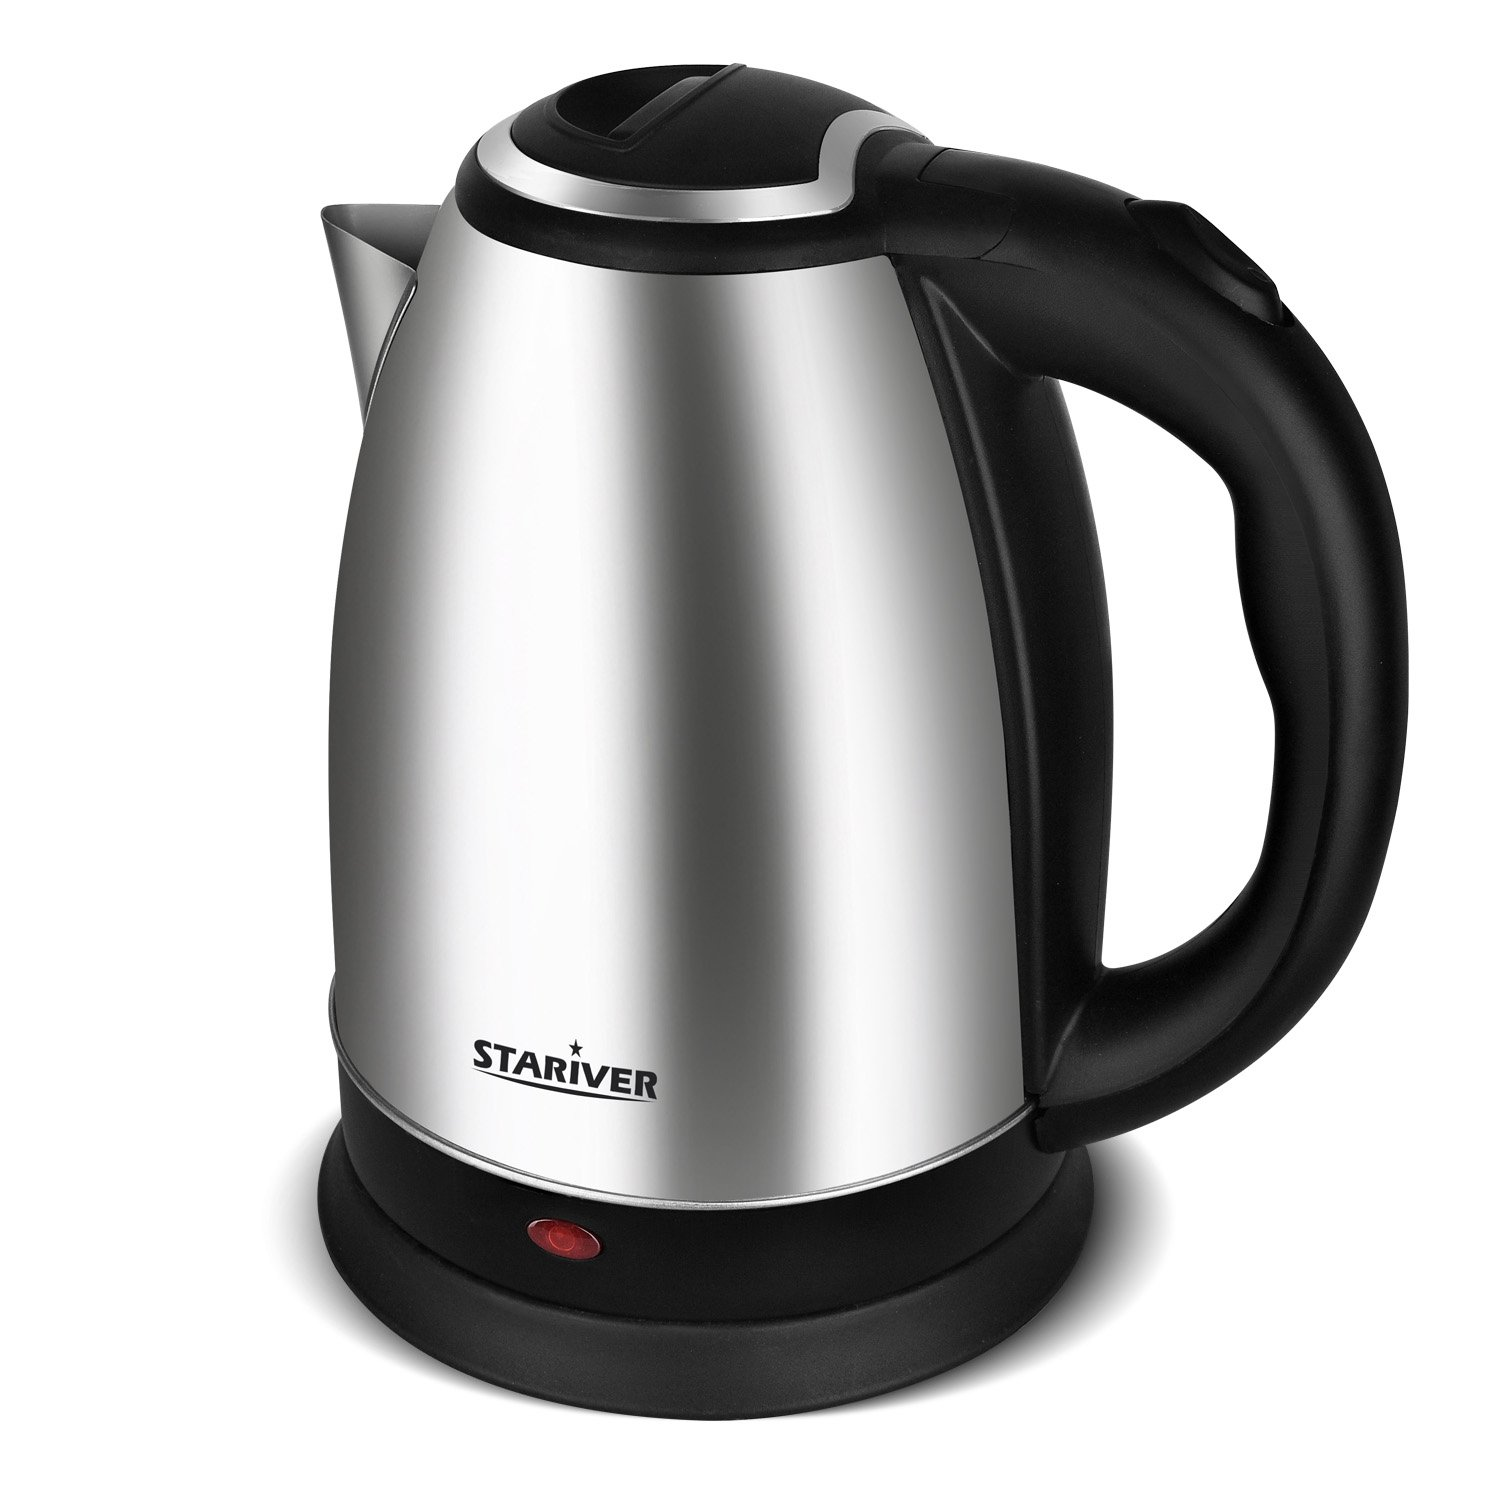 Stariver Electric Kettle Stainless Steel Cordless with Fast Boil, Auto Shut Off and Boil Dry Protection, Electric Tea Kettle - Classic Collection S2